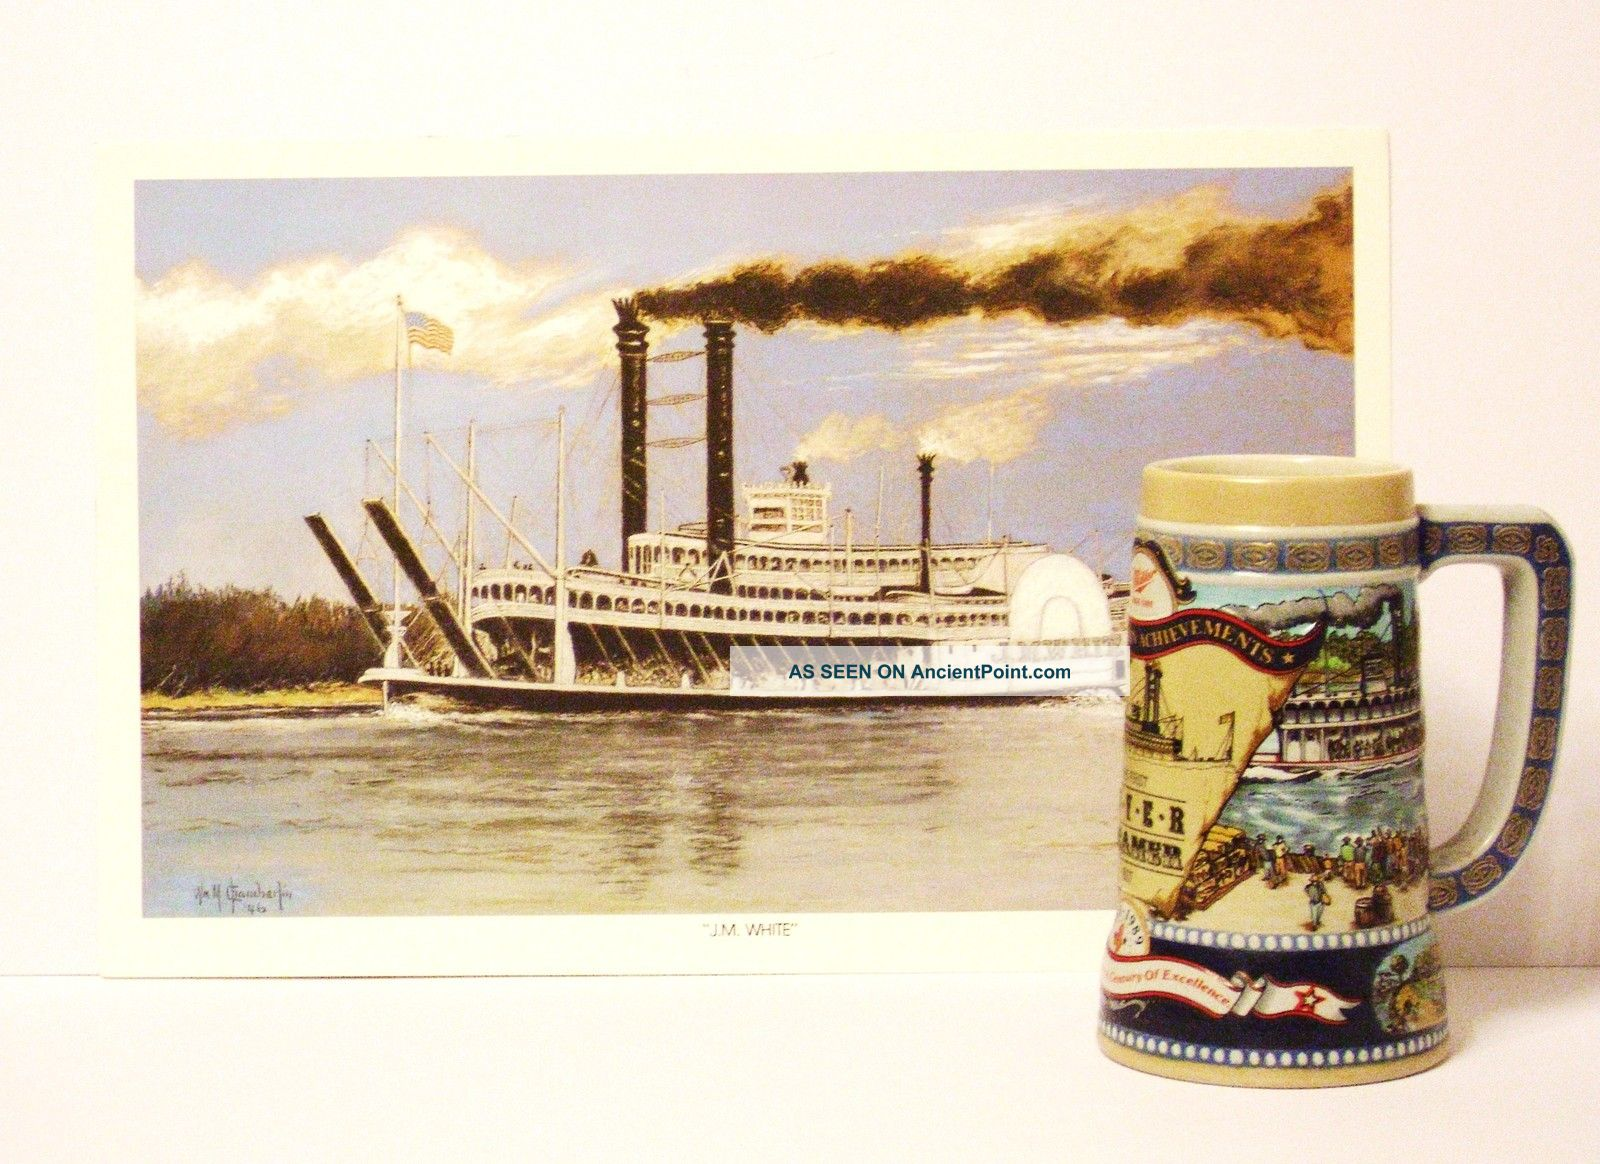 Commemorative Steam Ship Paddle Wheel Print/beer Stein Other photo